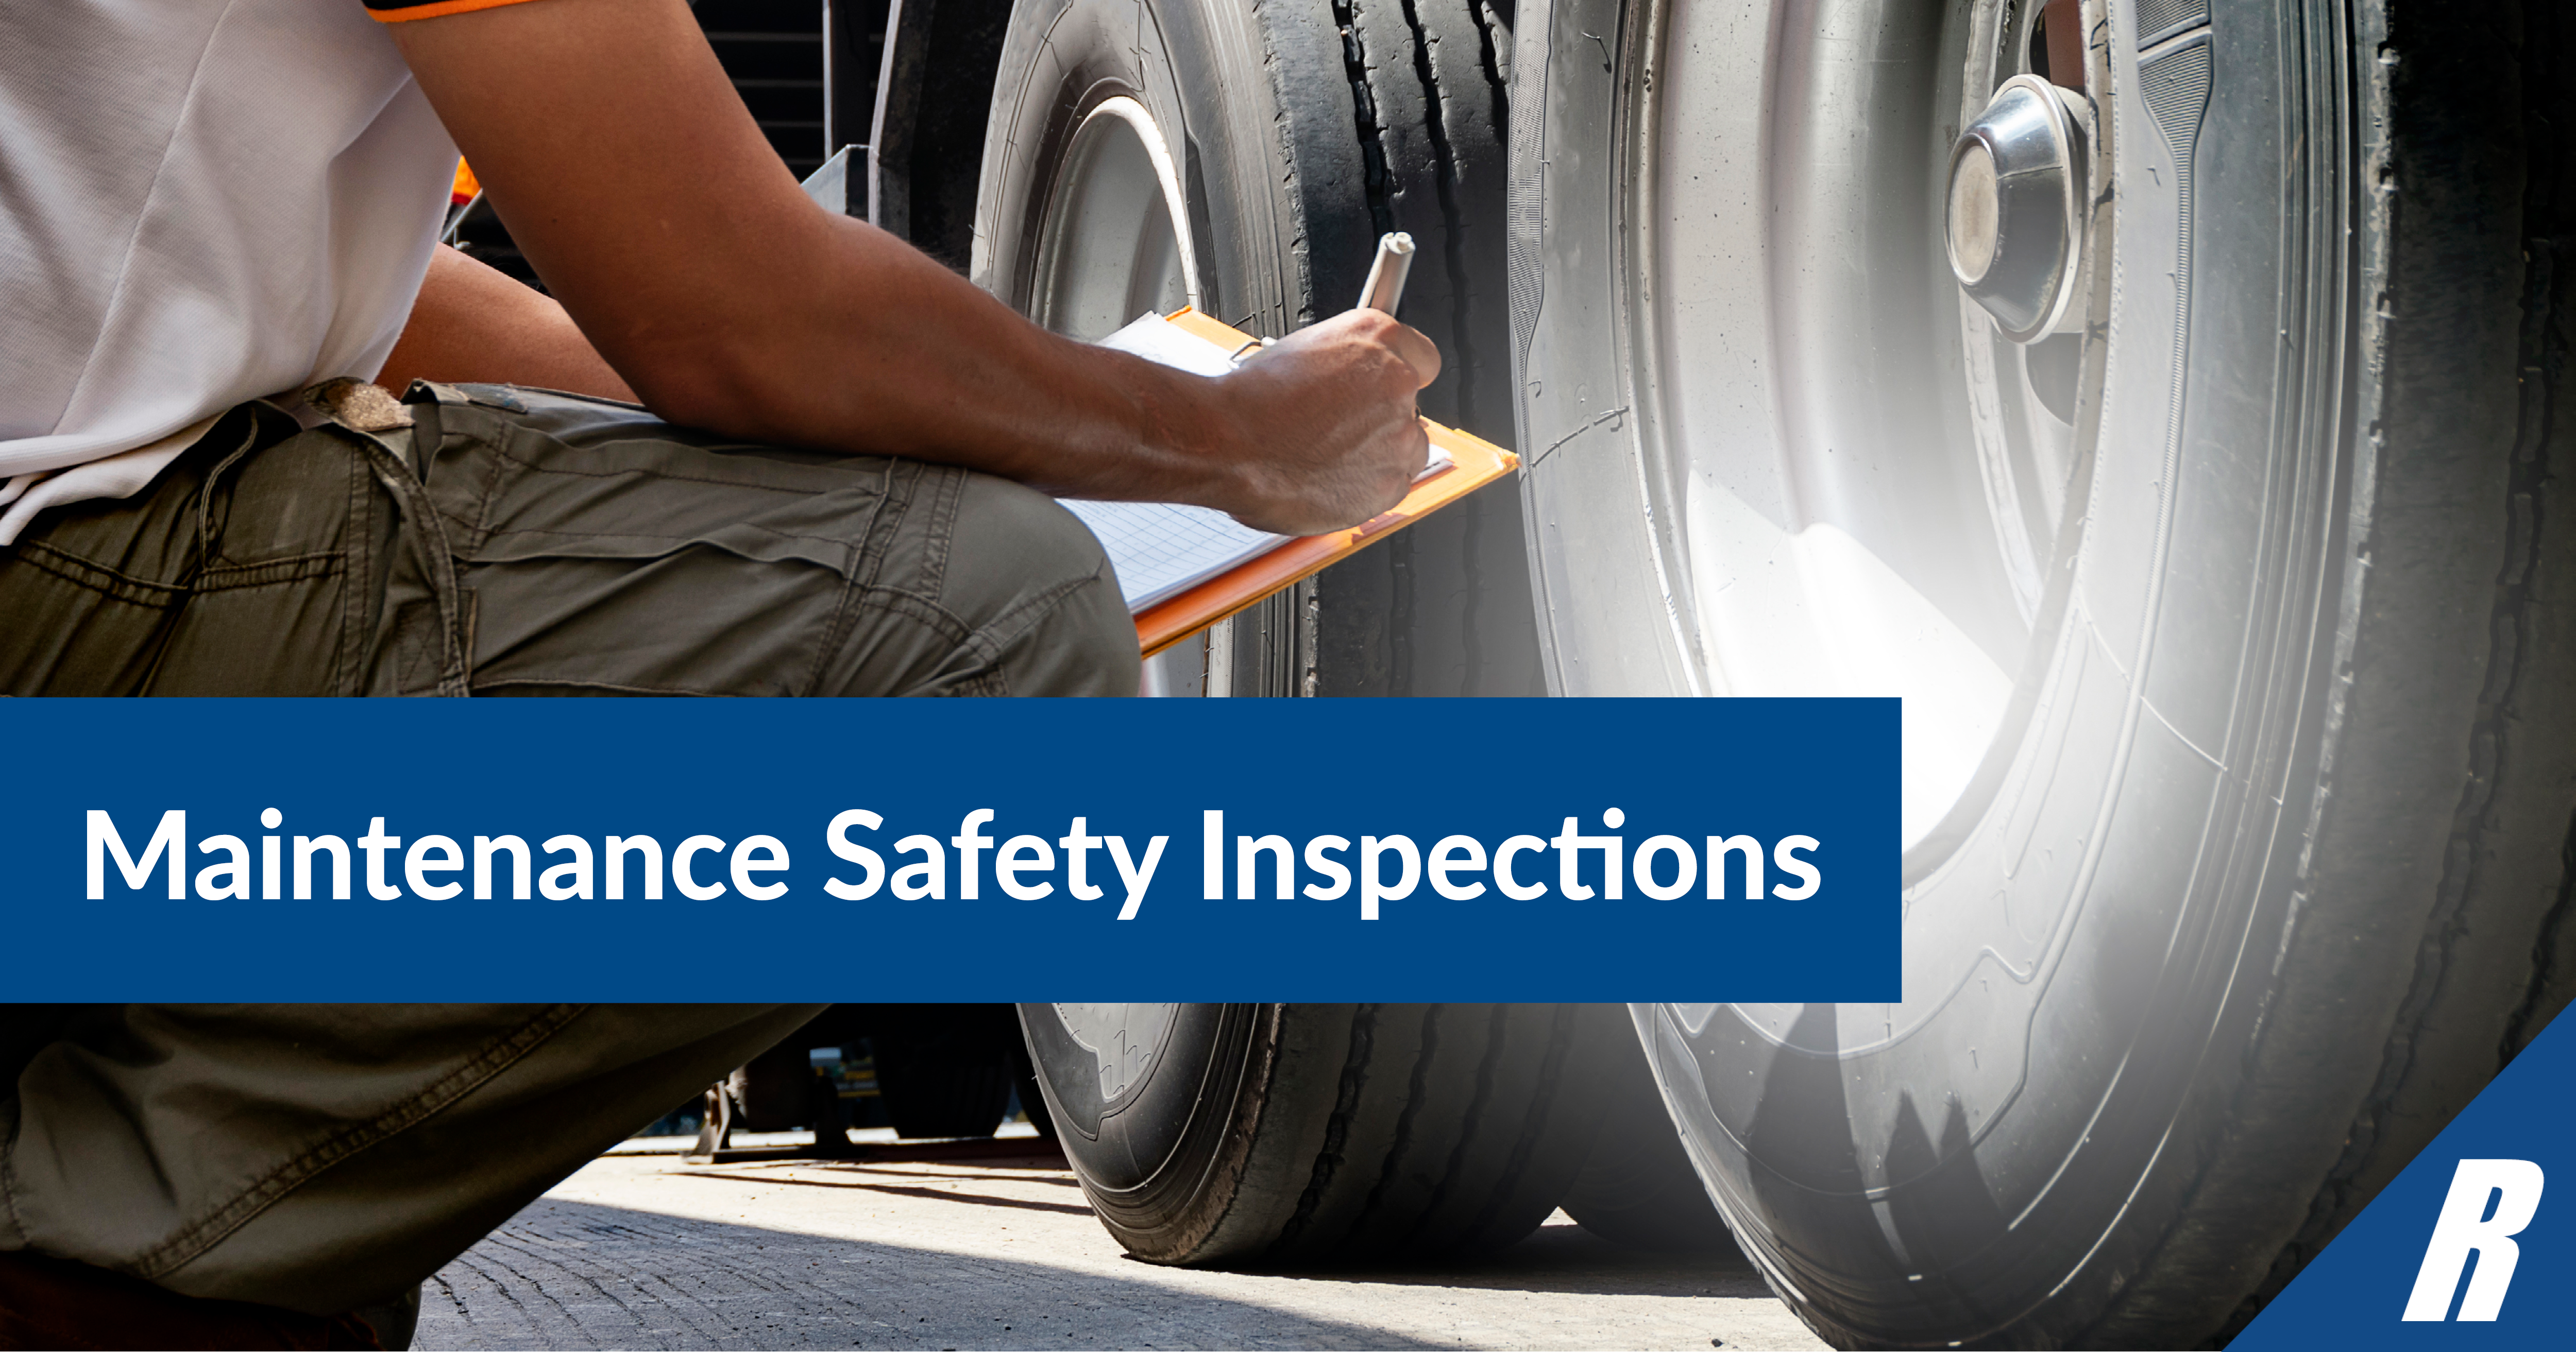 Maintenance Safety Inspections Social